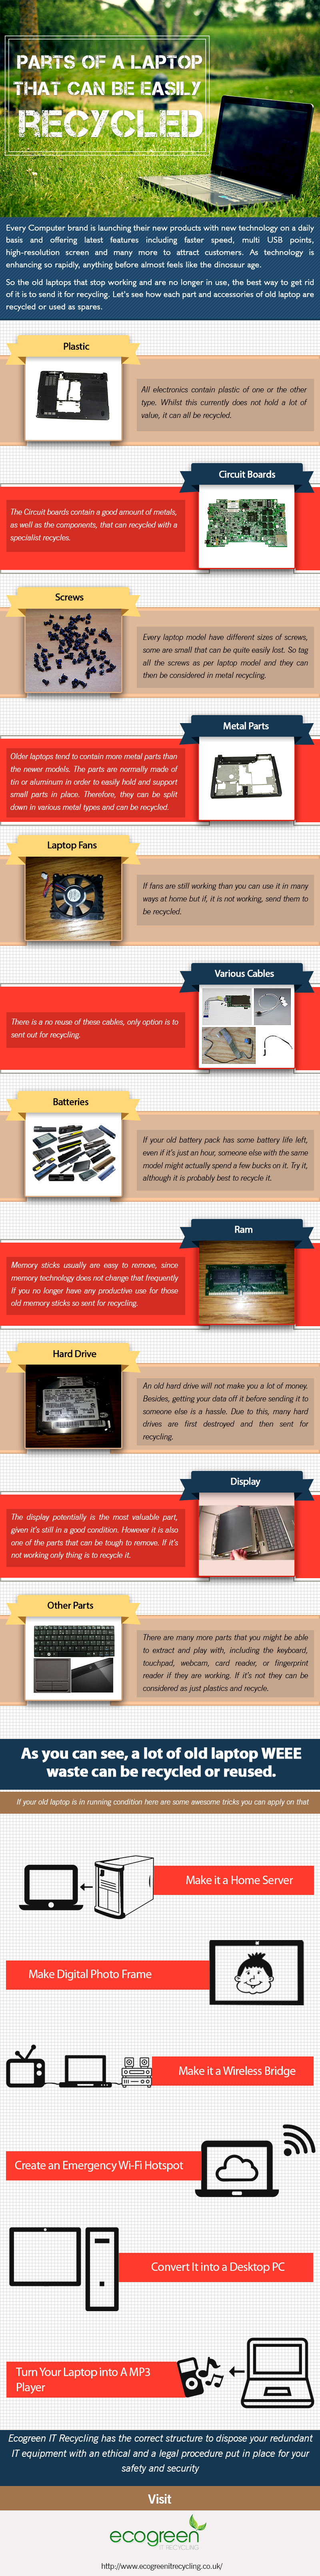 Laptop Recycling [Infographic]